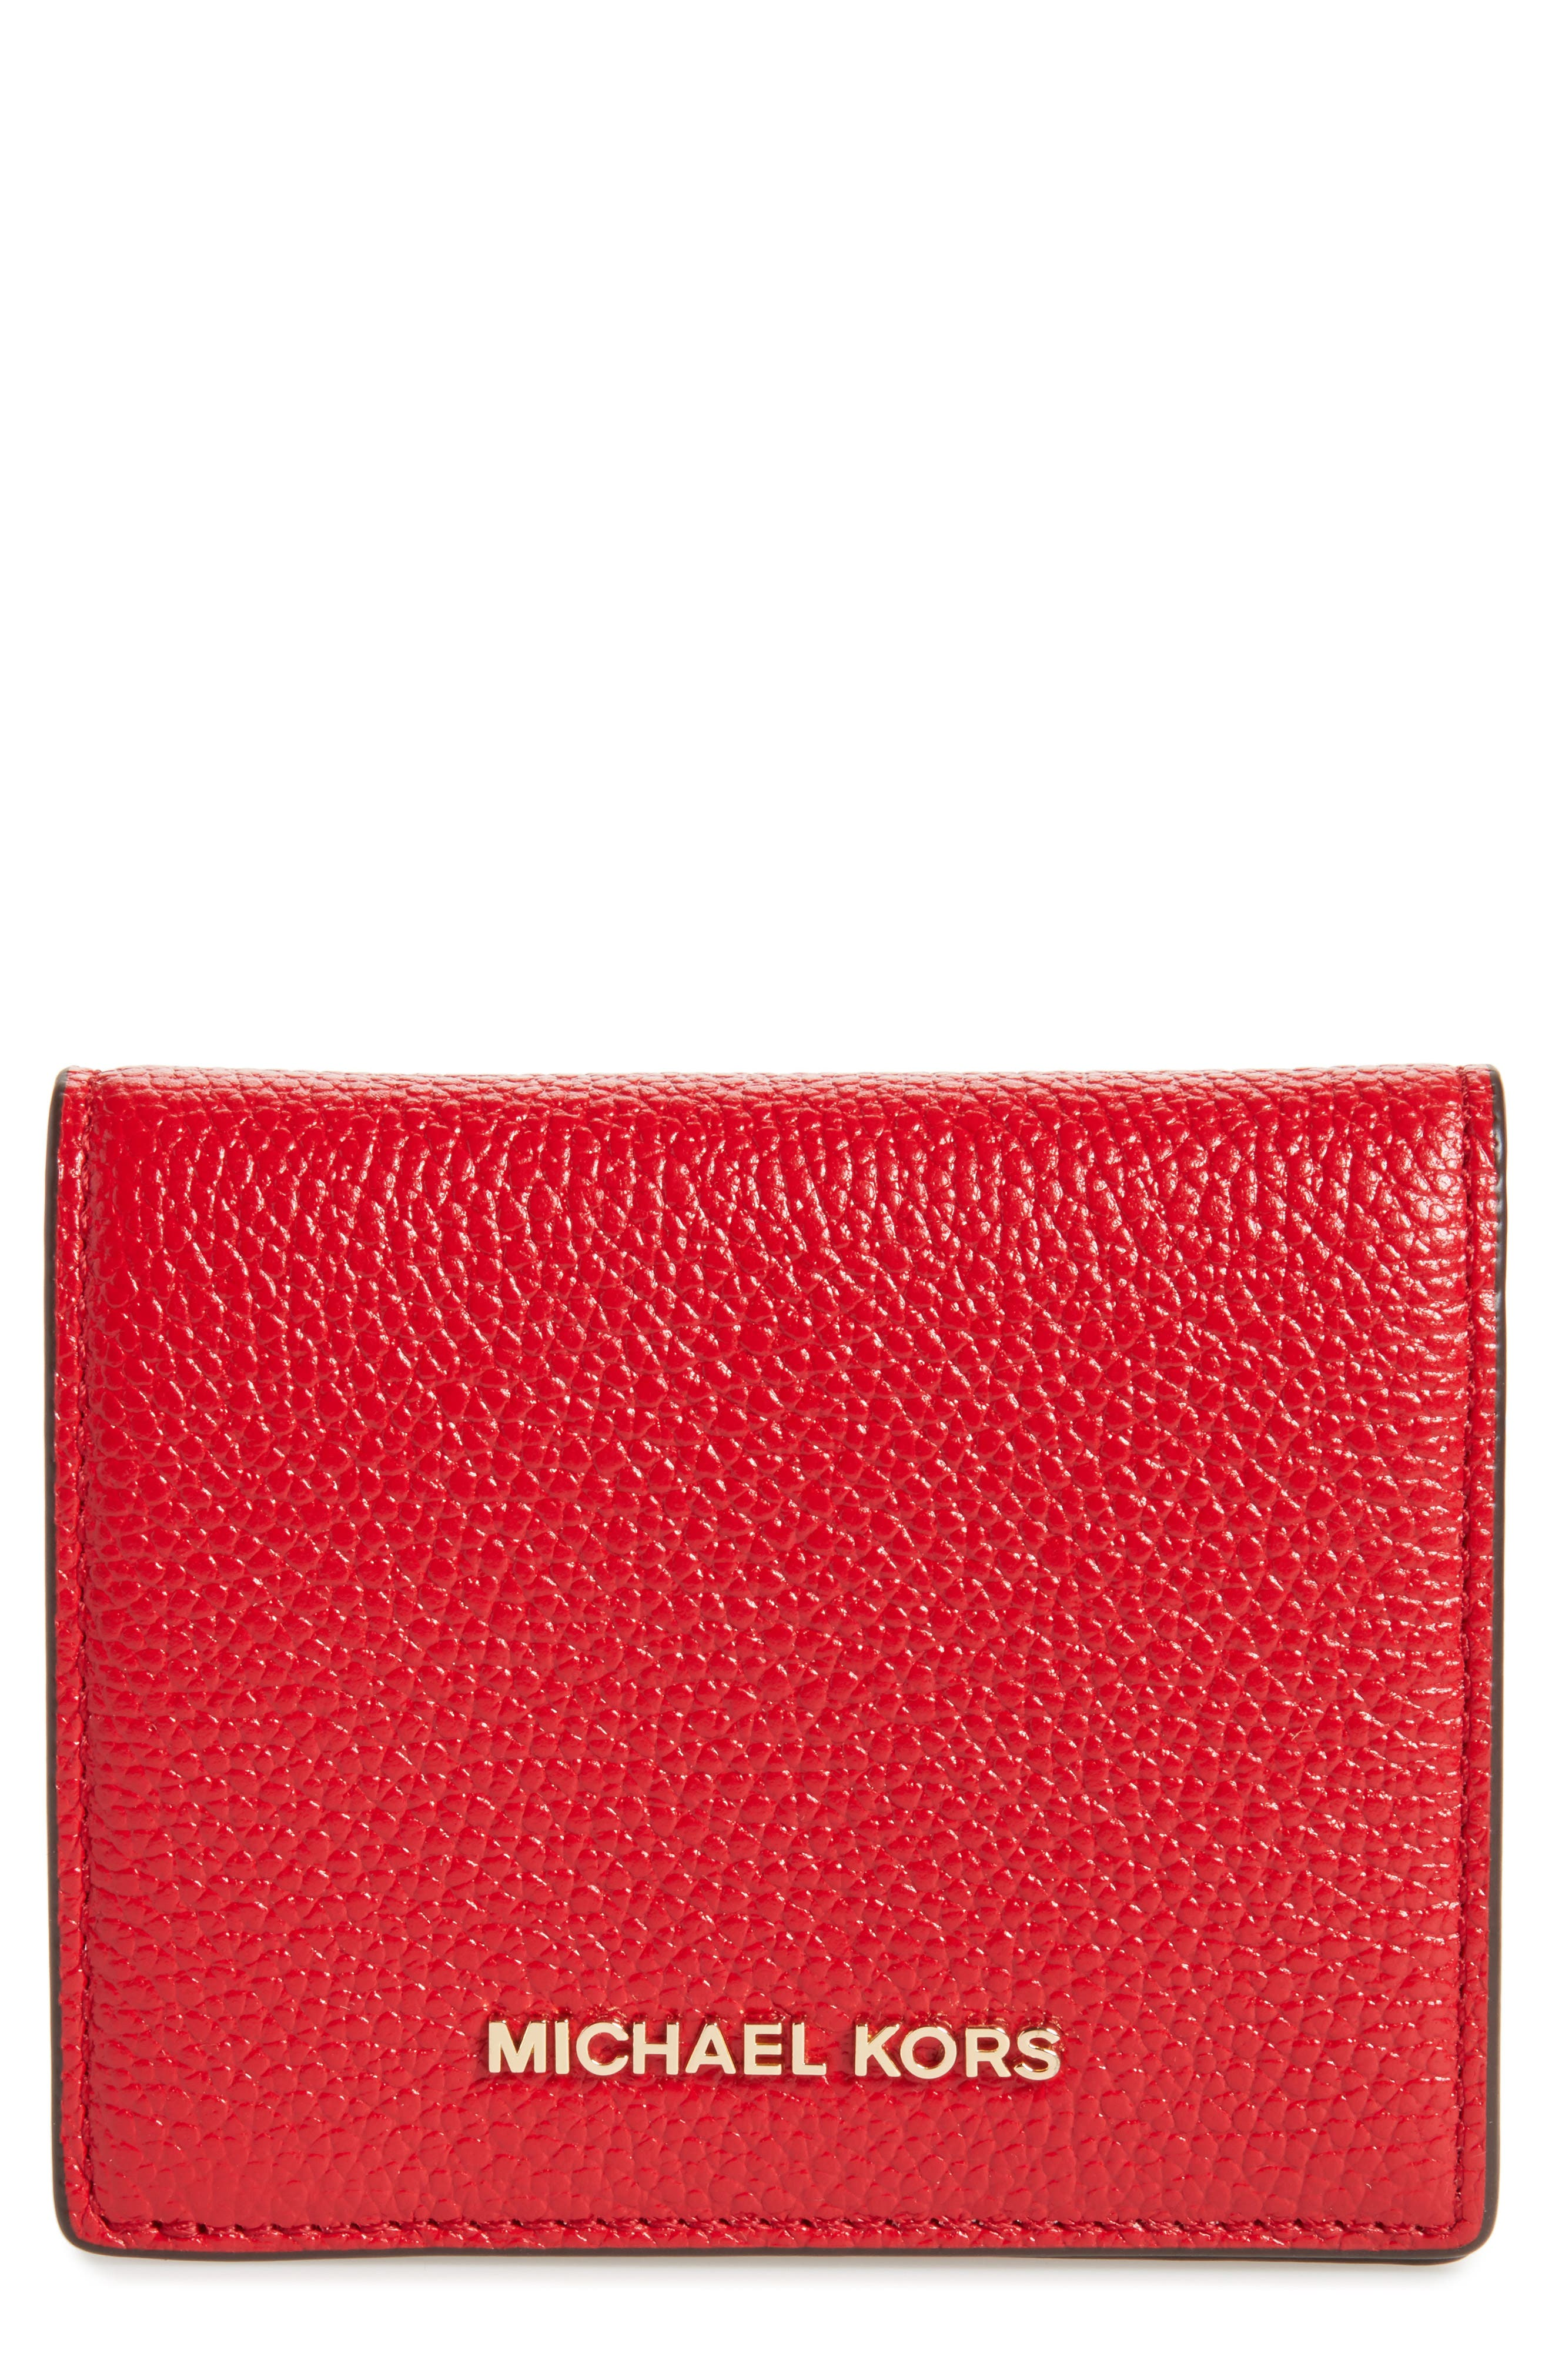 Mercer Leather RFID Card Holder,                             Main thumbnail 1, color,                             Bright Red